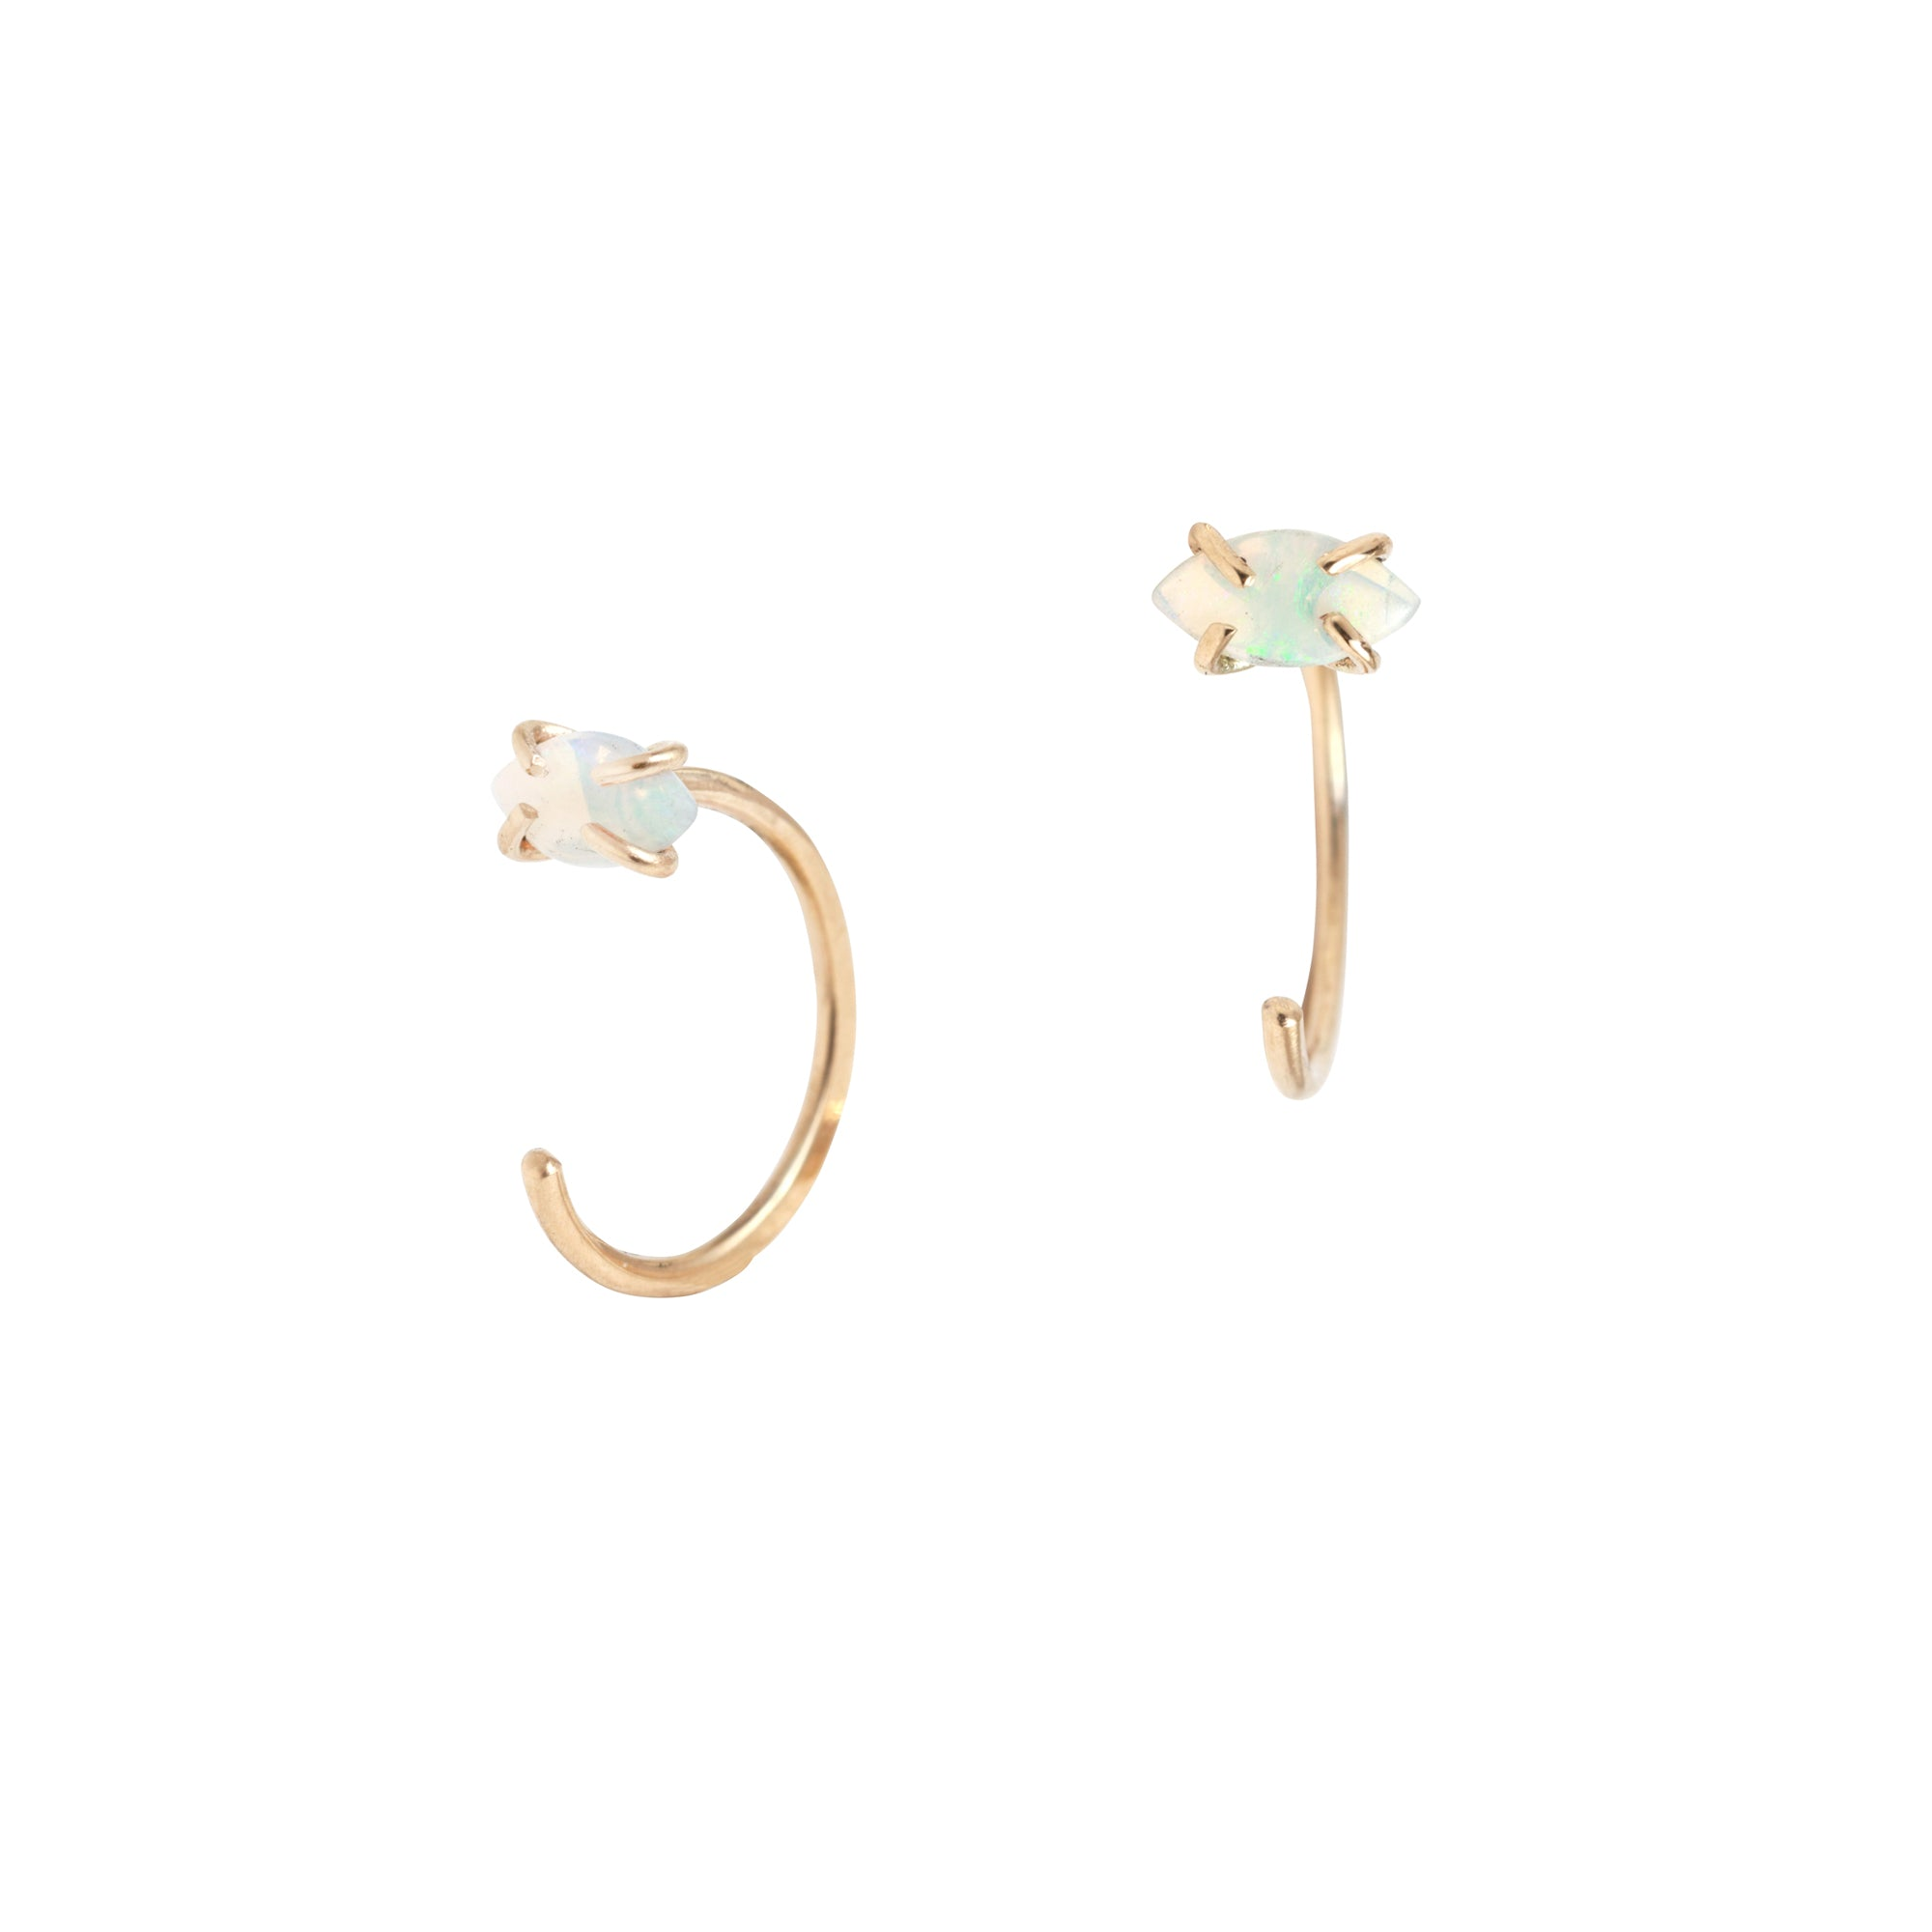 Melissa Joy Manning Huggie Hoops - Marquise Opal - Earrings - Broken English Jewelry